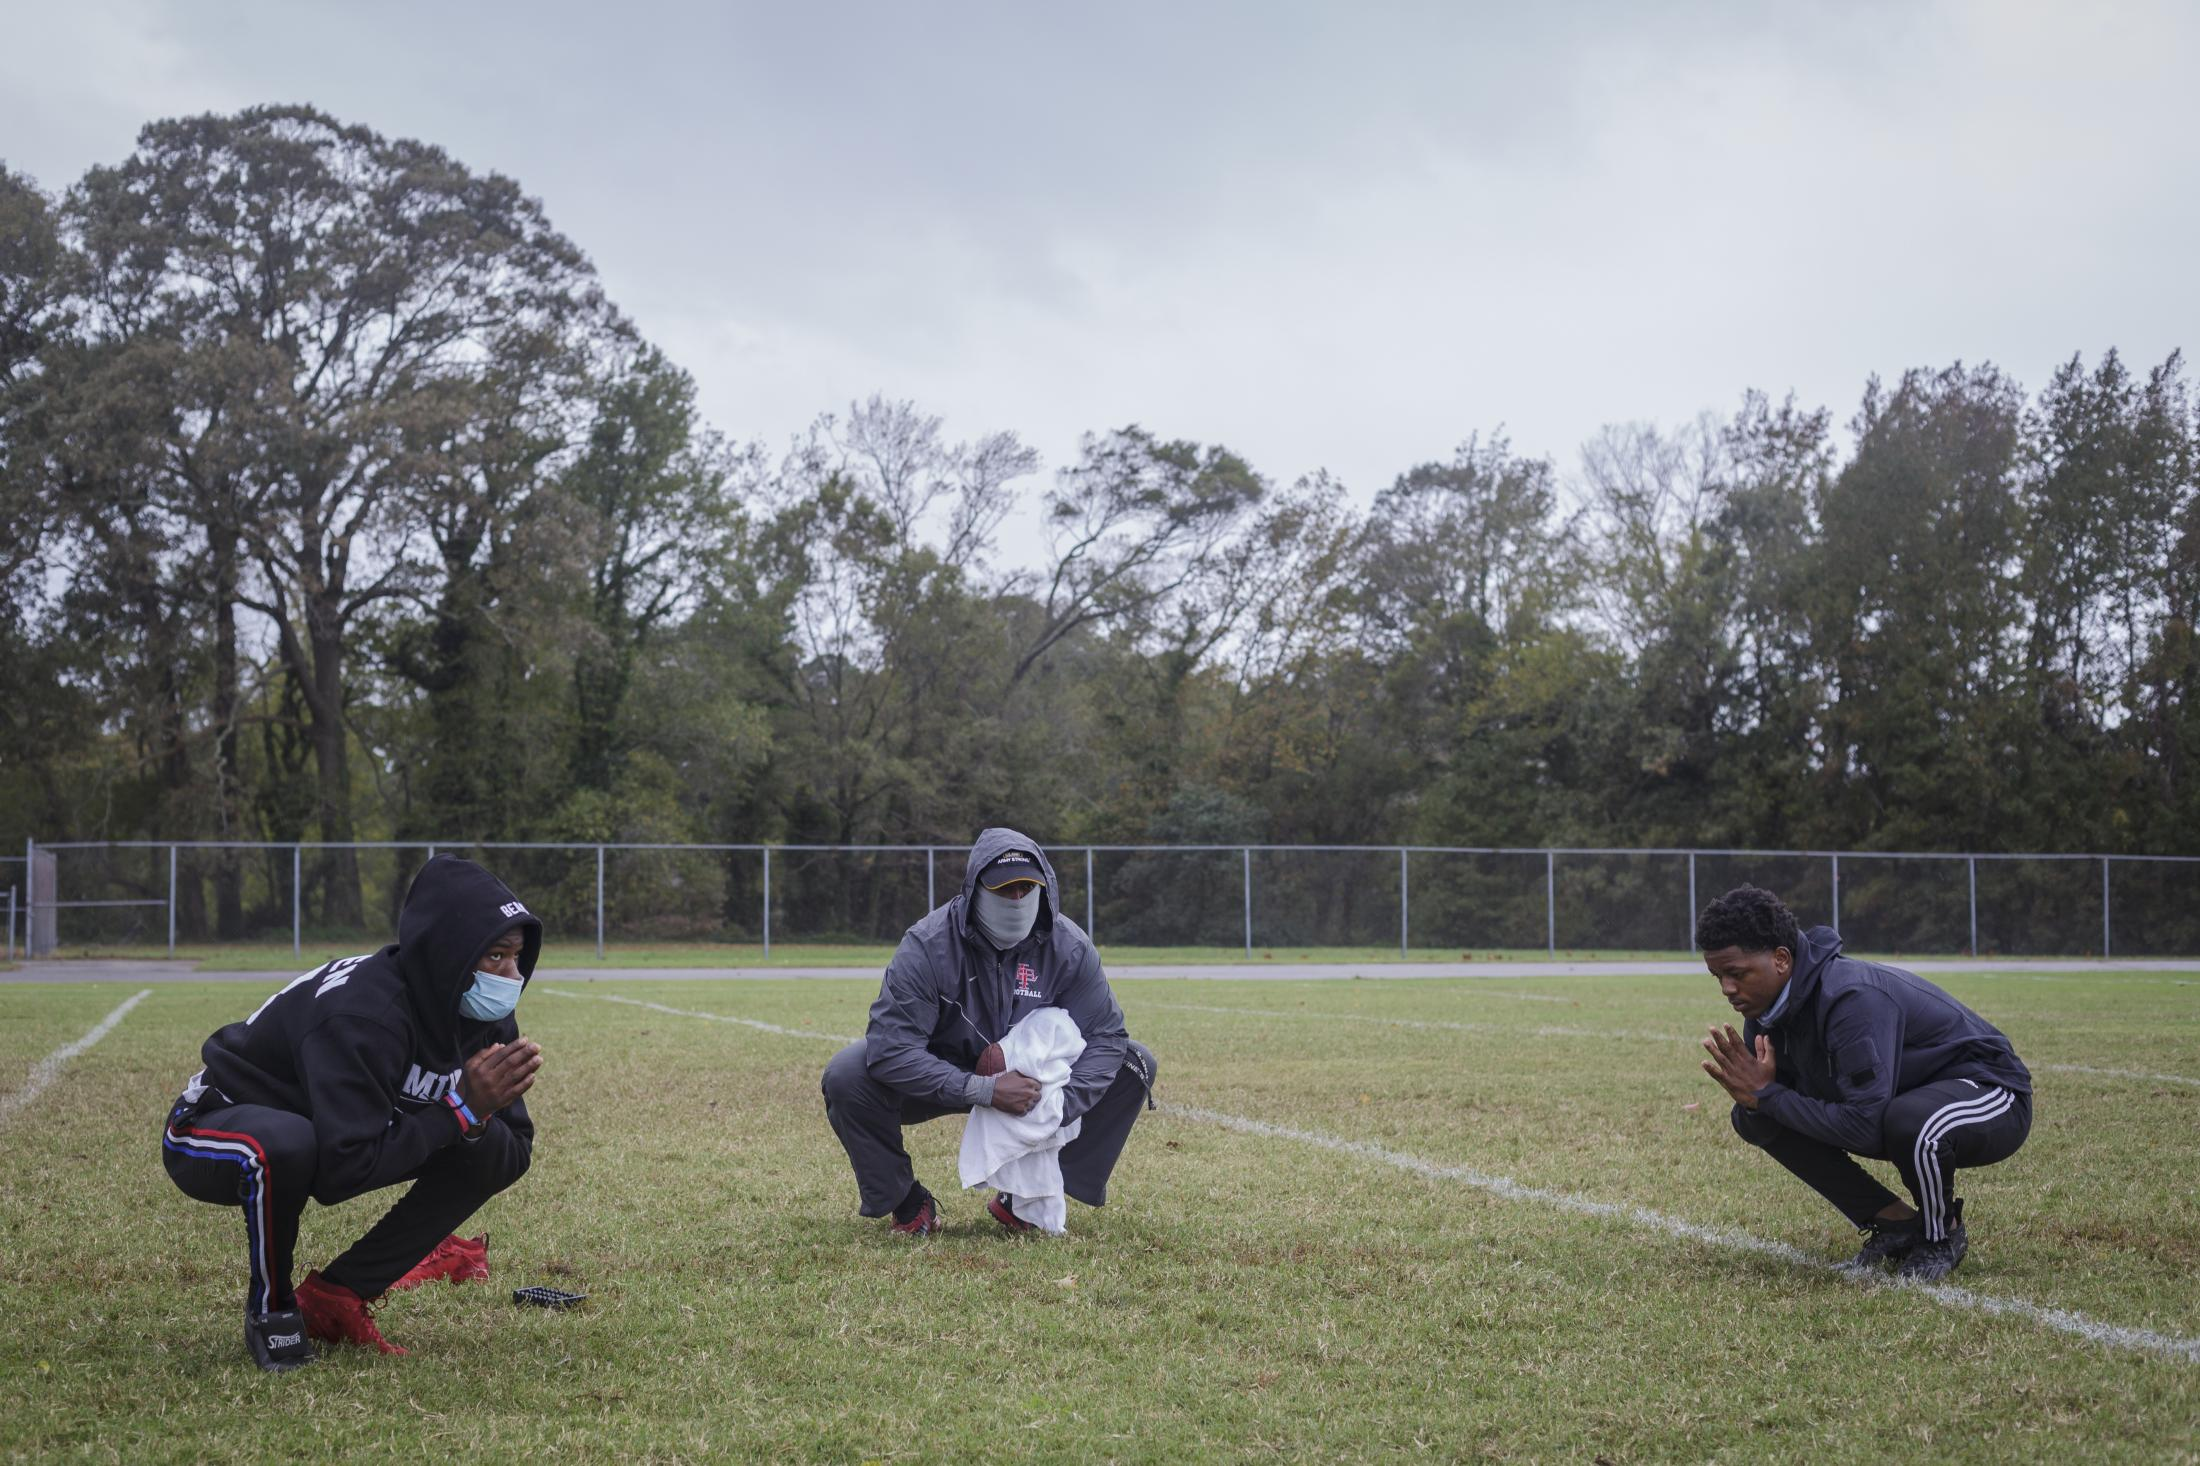 NORFOLK, VA – October 29, 2020: Jeff Foster (left), Assistant Coach Antonio Thompson (Center) and Pierre Royster (right) members of the Lake Taylor High School TITANS, at football practice during a warm-up. Due to the COVID-19 pandemic, football games were canceled at Lake Taylor High School in Norfolk, VA, but weekly practice are still going on. Carlos Bernate / The Undefeated